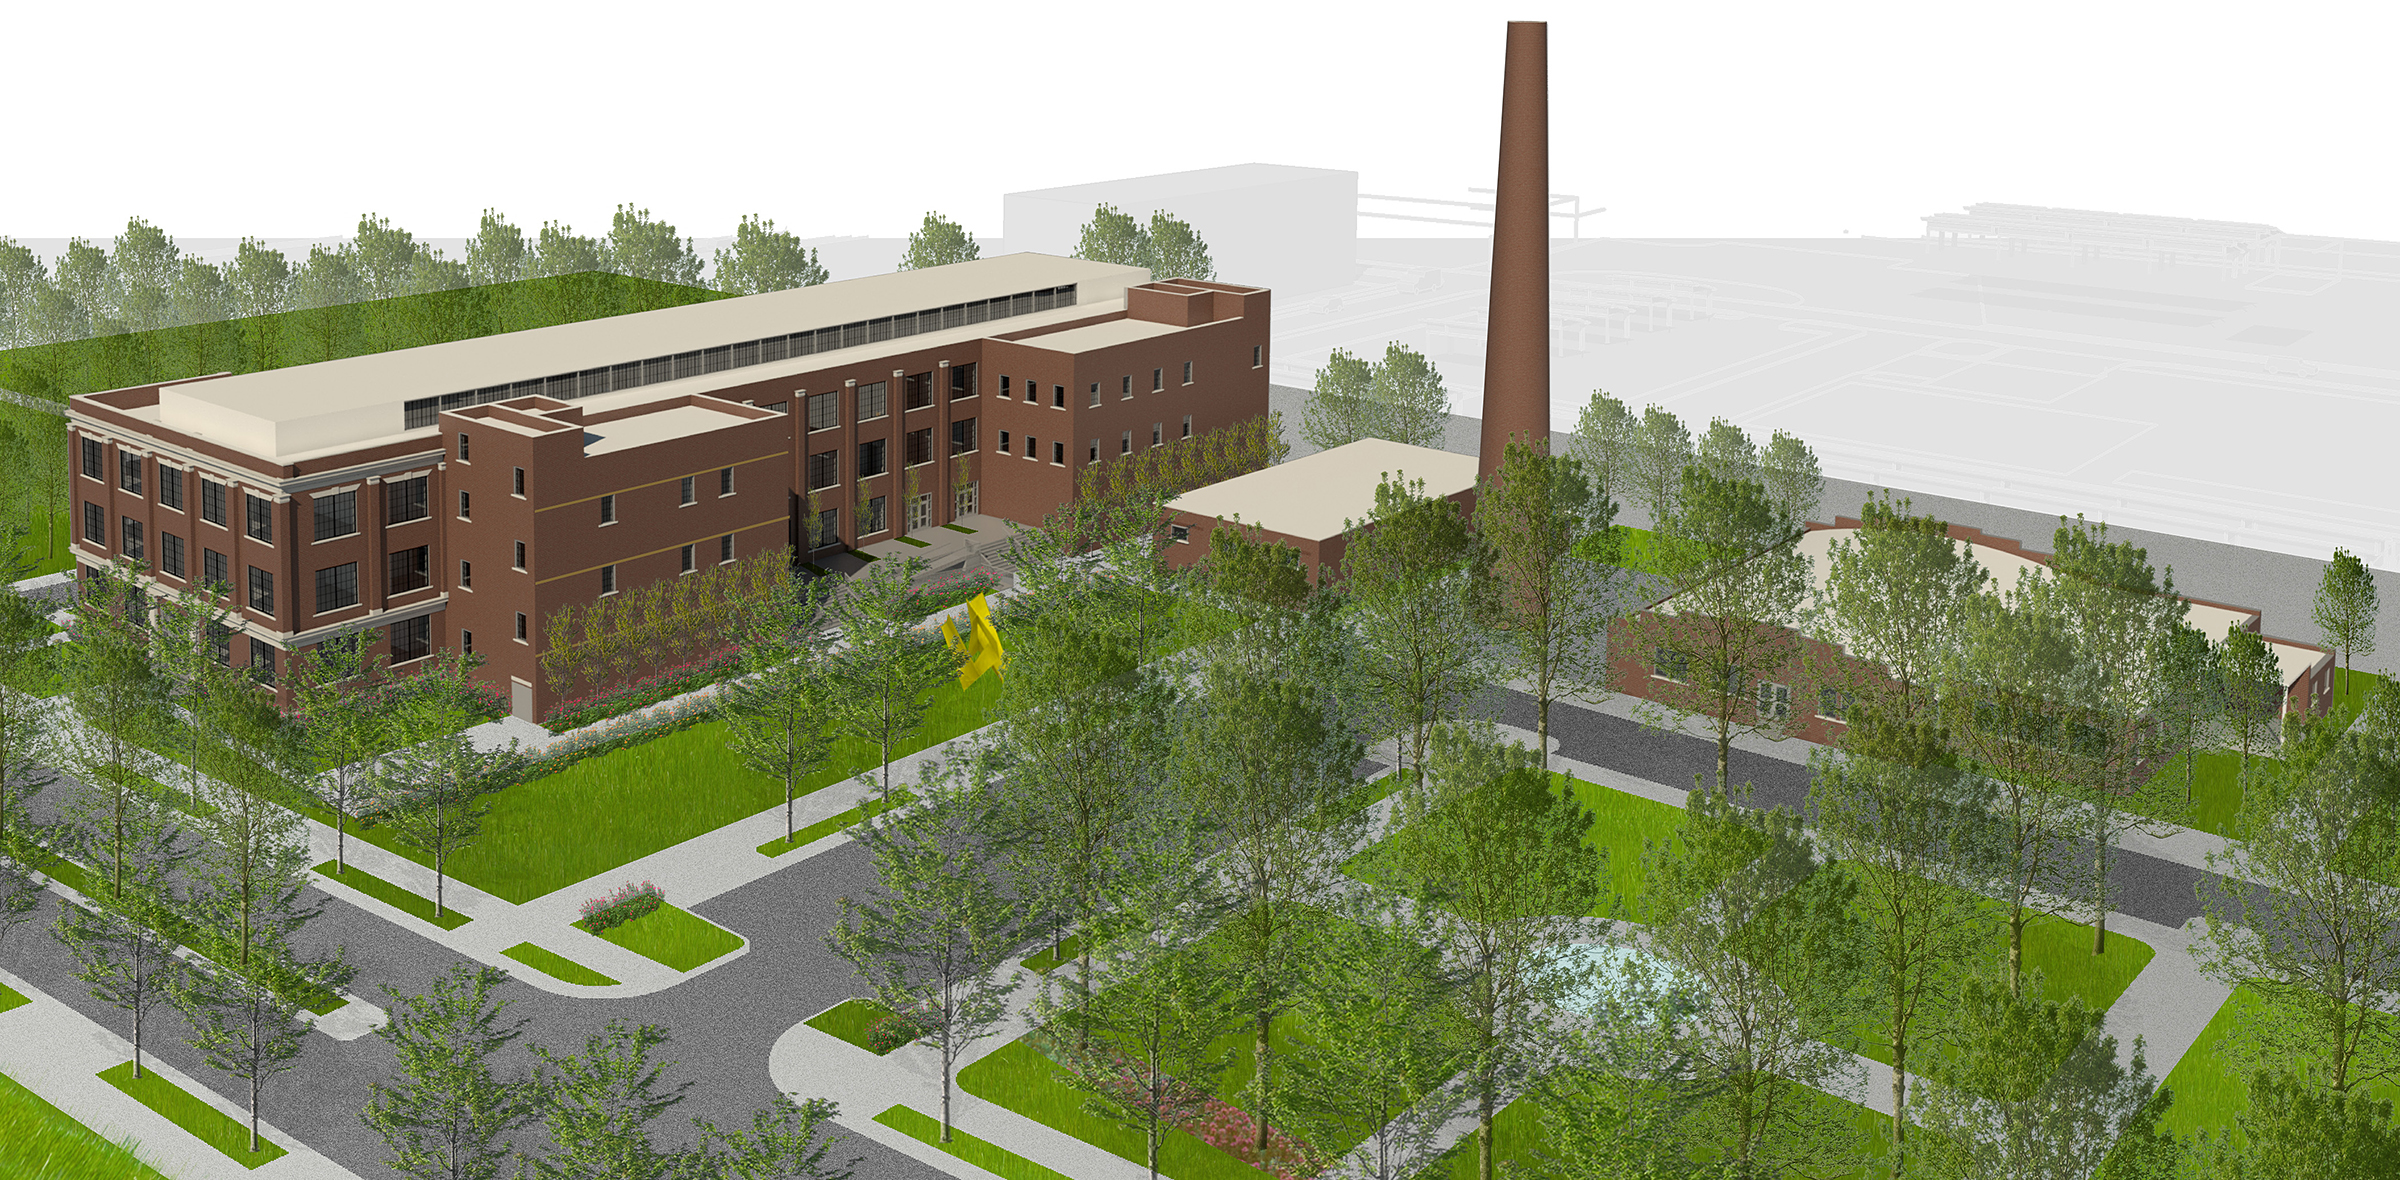 Purdue Polytechnic High School moving forward in Indy - Purdue